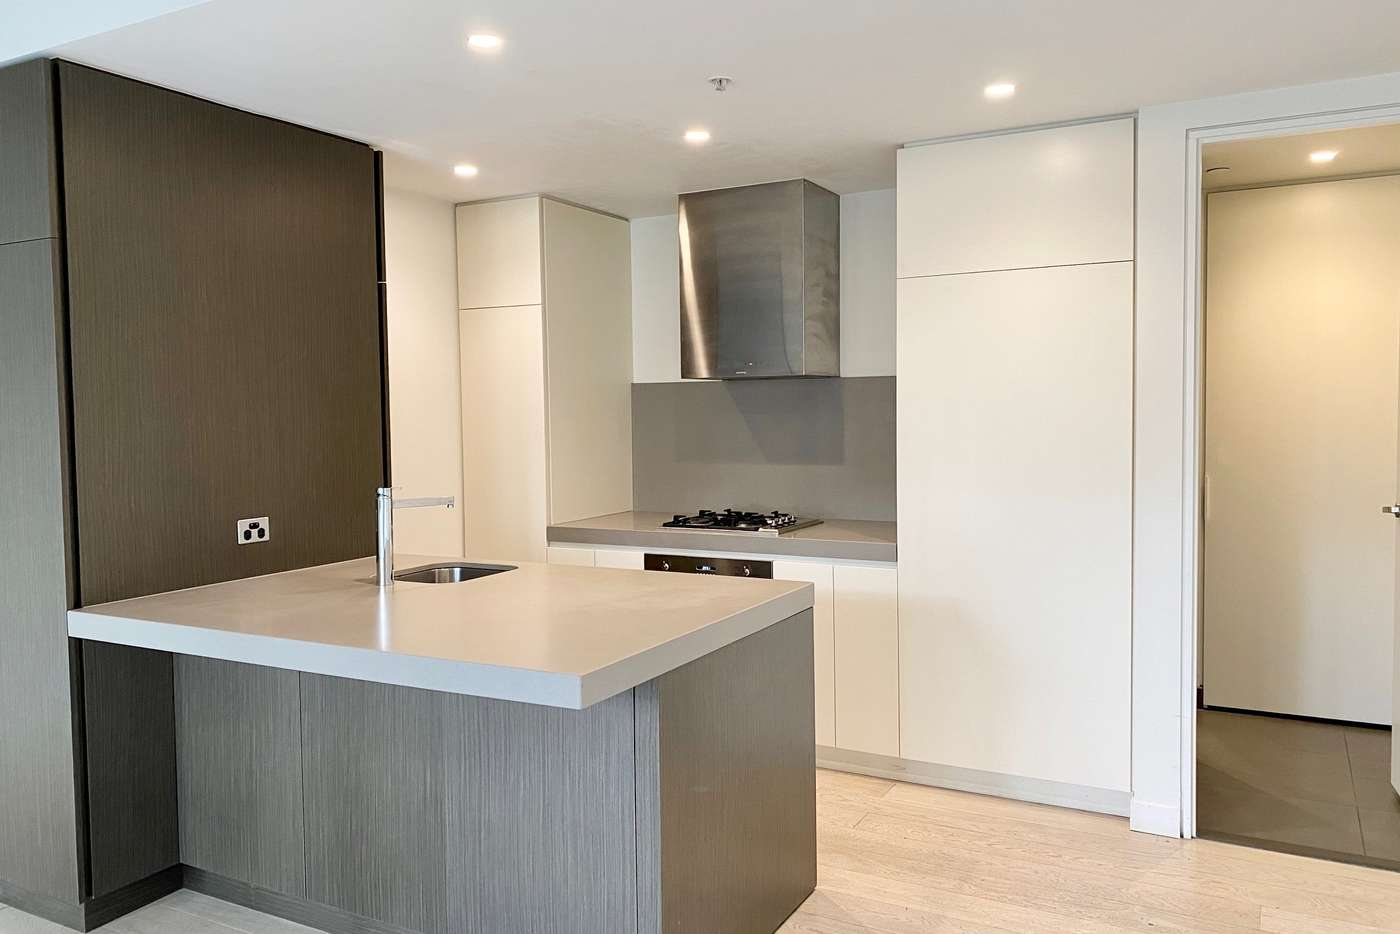 Sixth view of Homely apartment listing, 109/5 Courtney St, North Melbourne VIC 3051